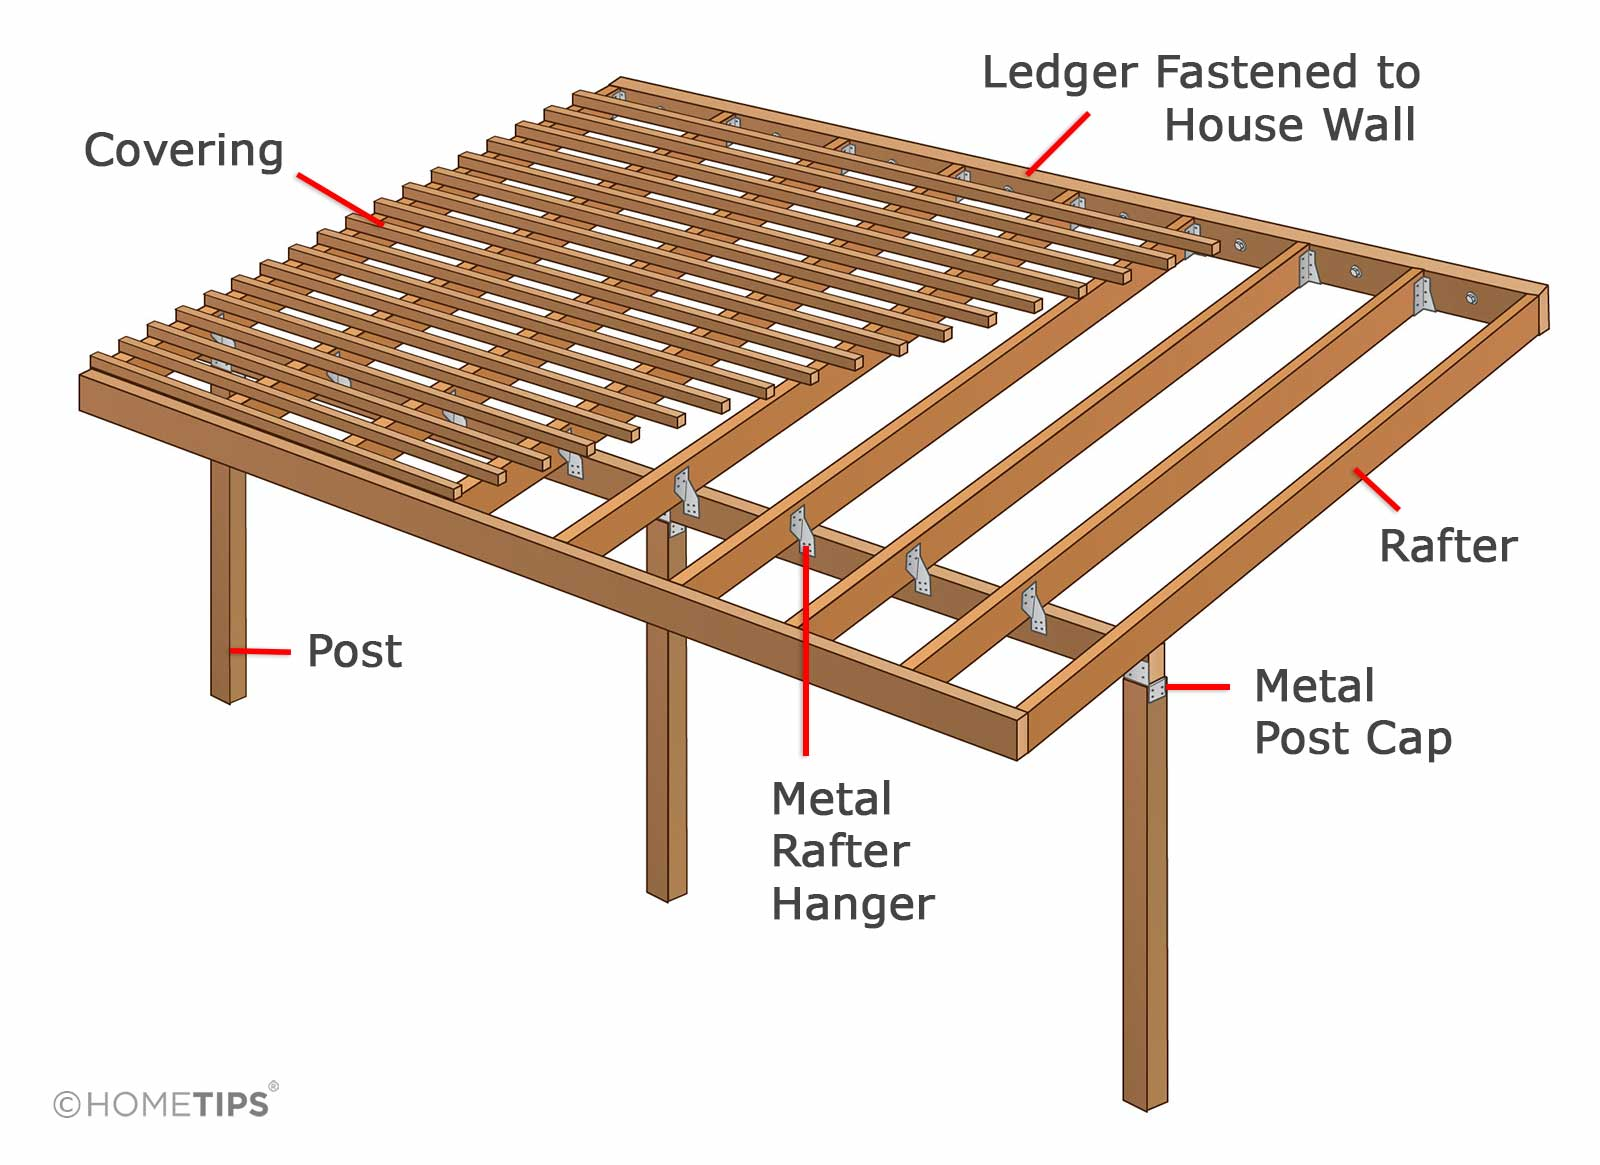 Diagram showing the parts of a house-attached patio roof, including lumber types, measurements, and hardware.